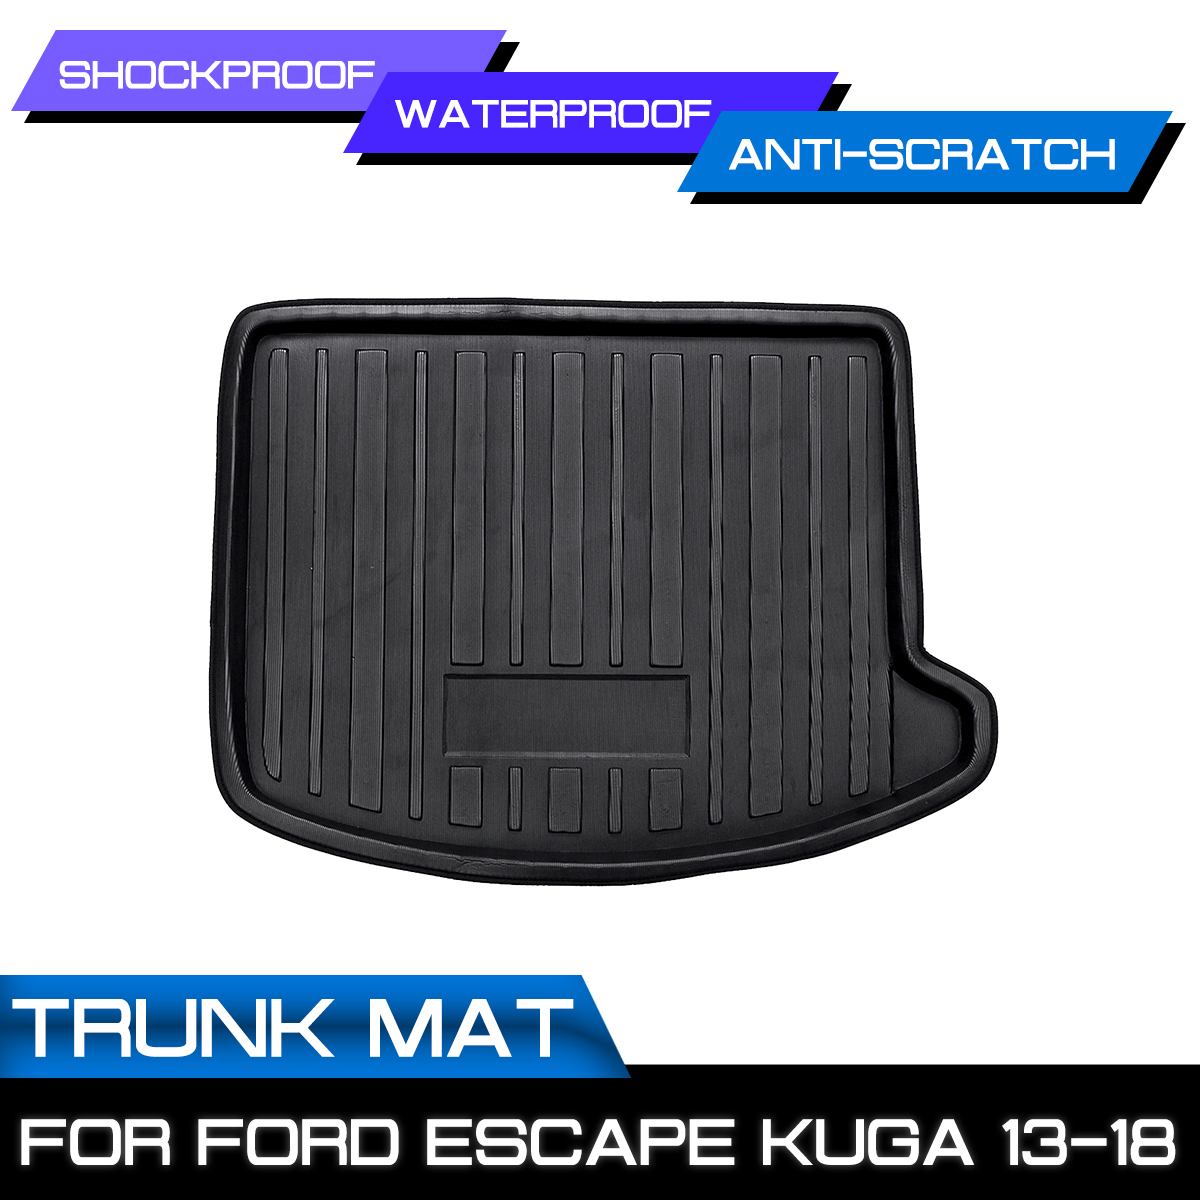 Cargo Floor Tray For Ford Escape Kuga Kick Protector Overlay 2013-2018 Carpet Mud Rear Trunk Boot Mat Liner Shock Waterproof